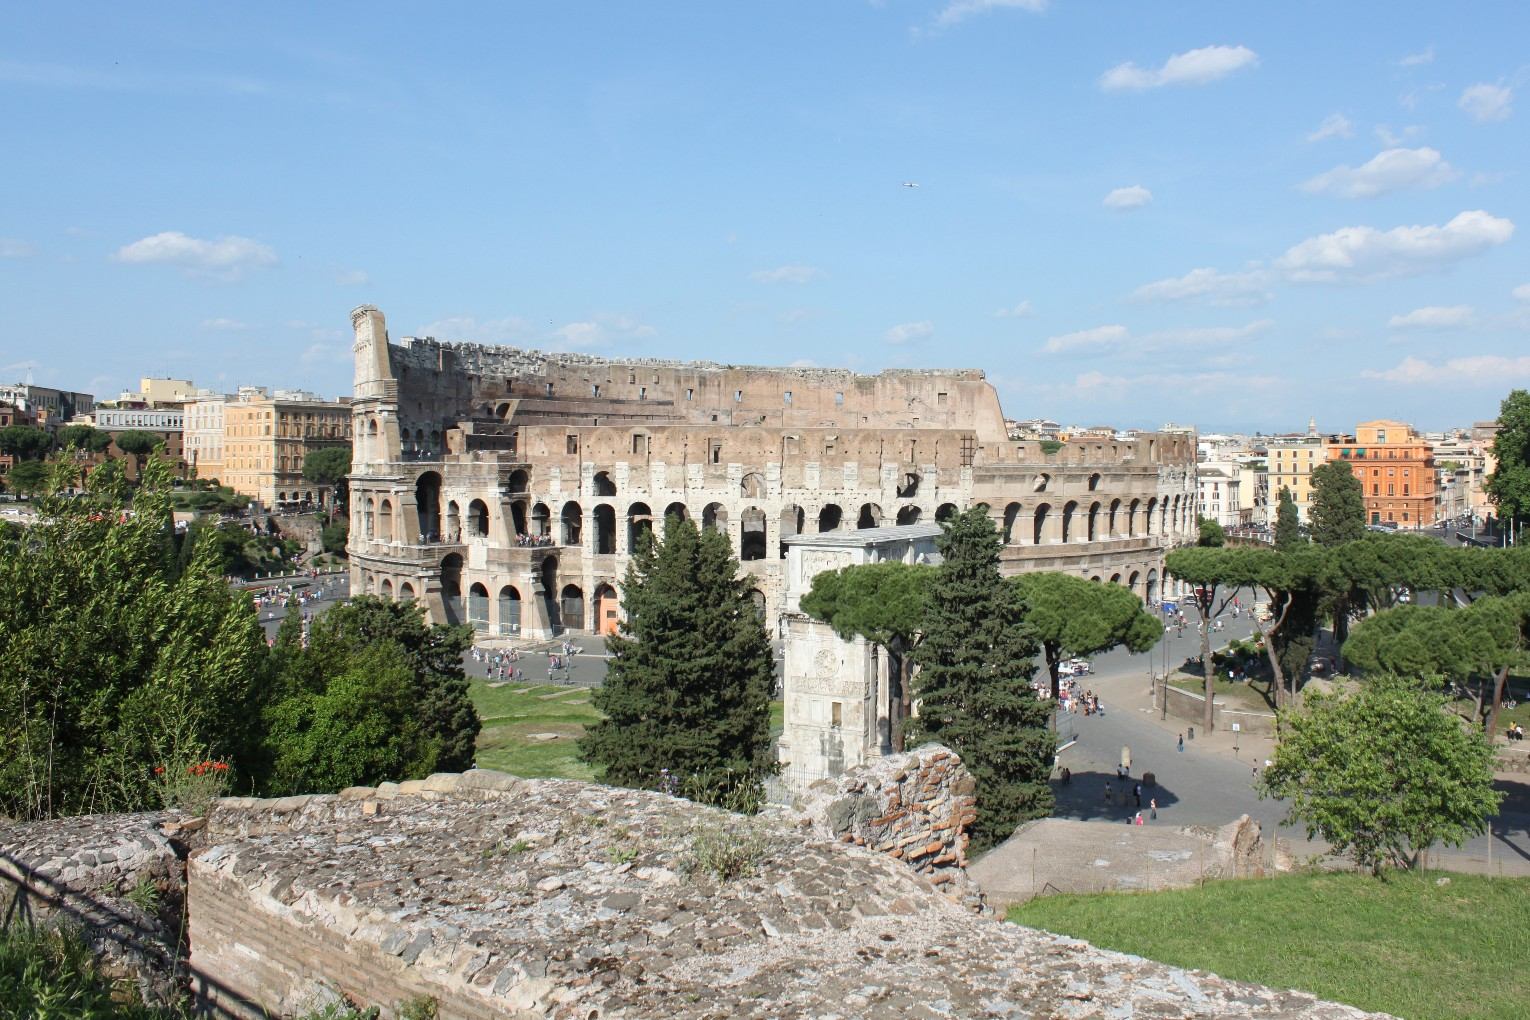 02 17 Coliseum from Forum complex